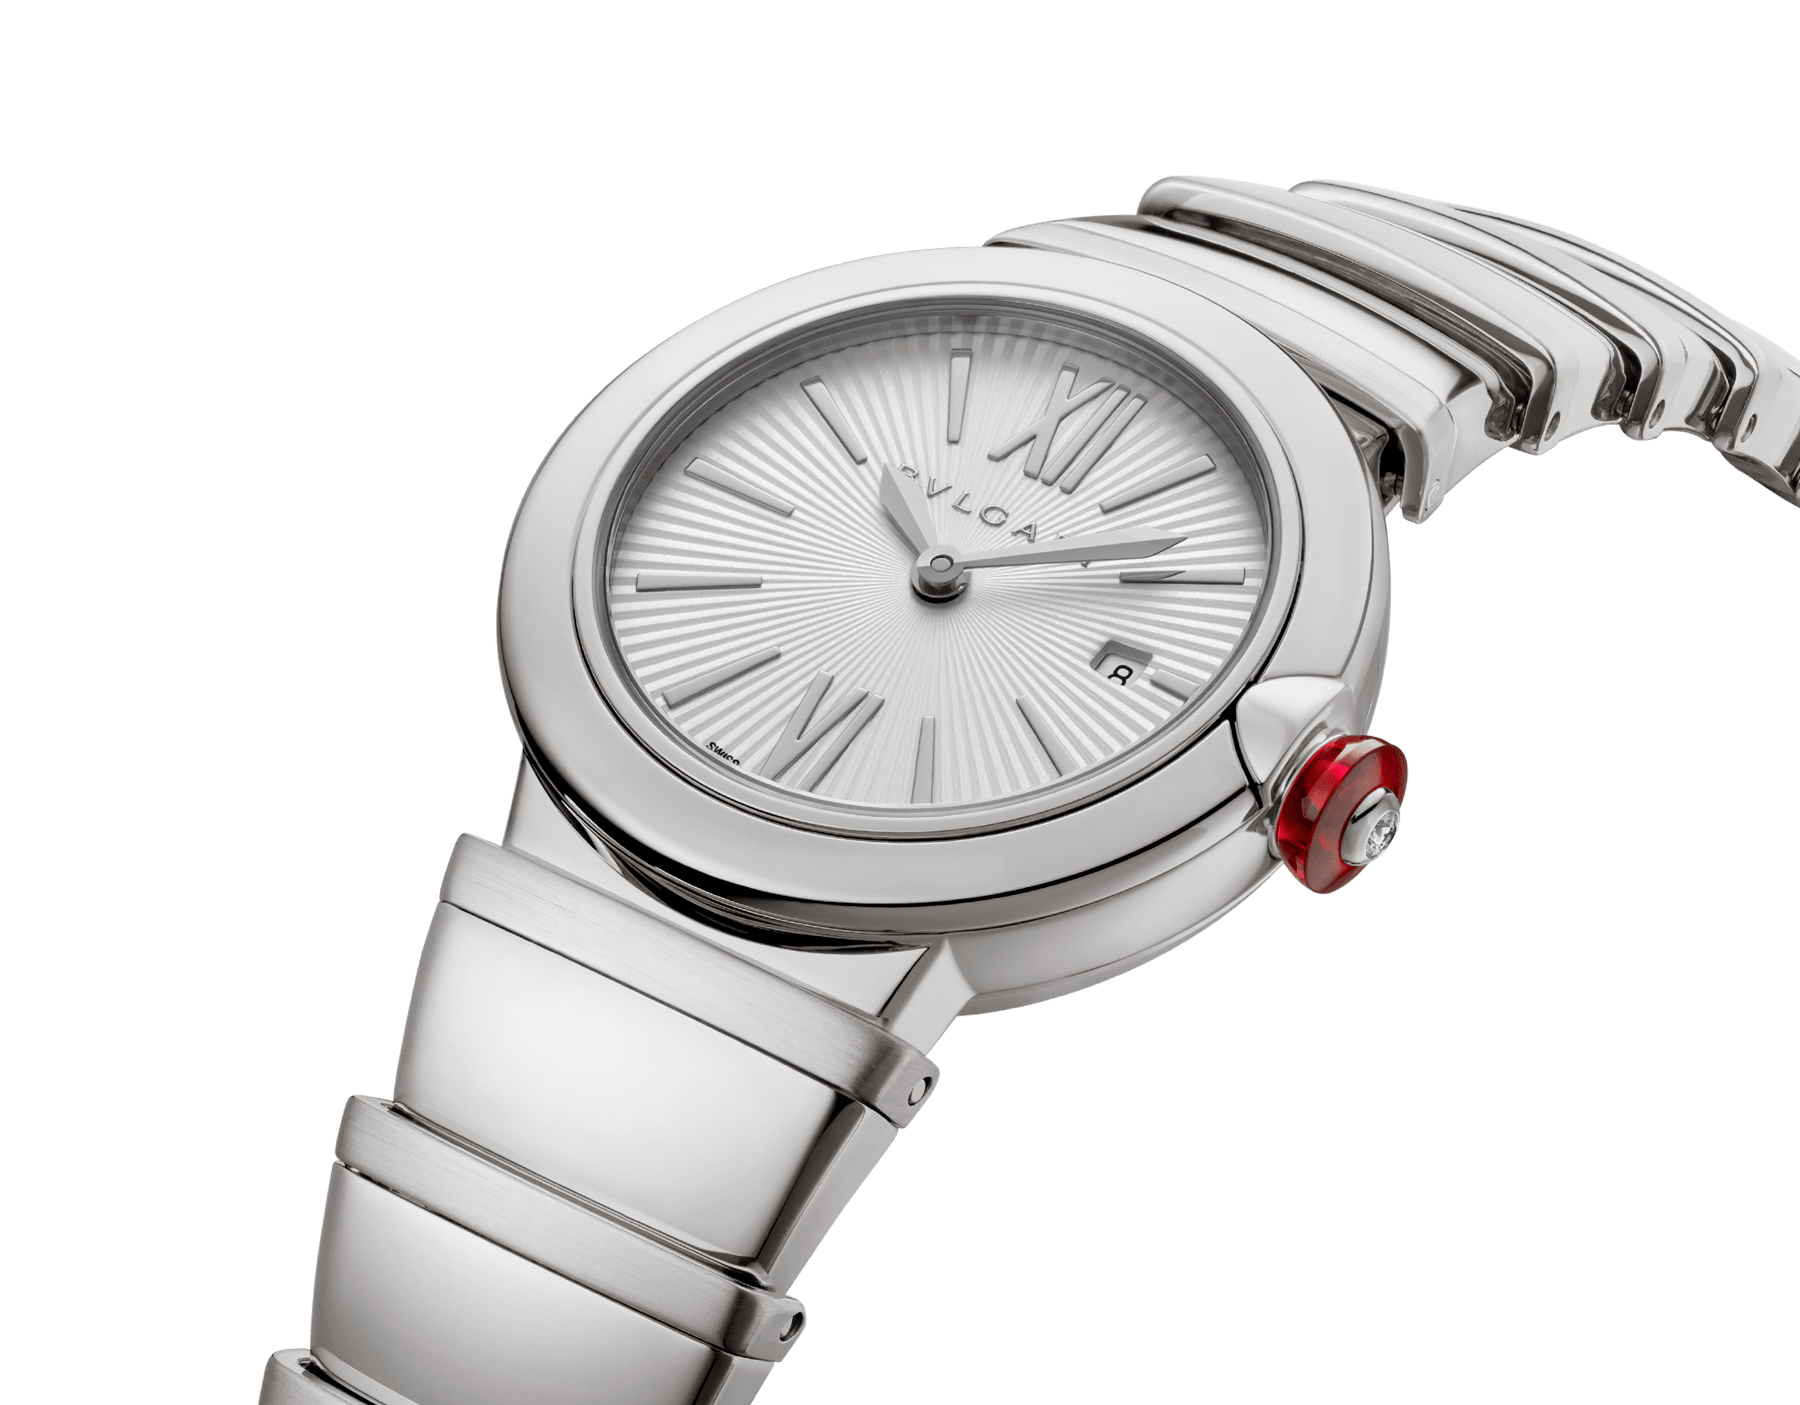 LVCEA watch in stainless steel case and bracelet, with silver opaline dial. 102195 image 2